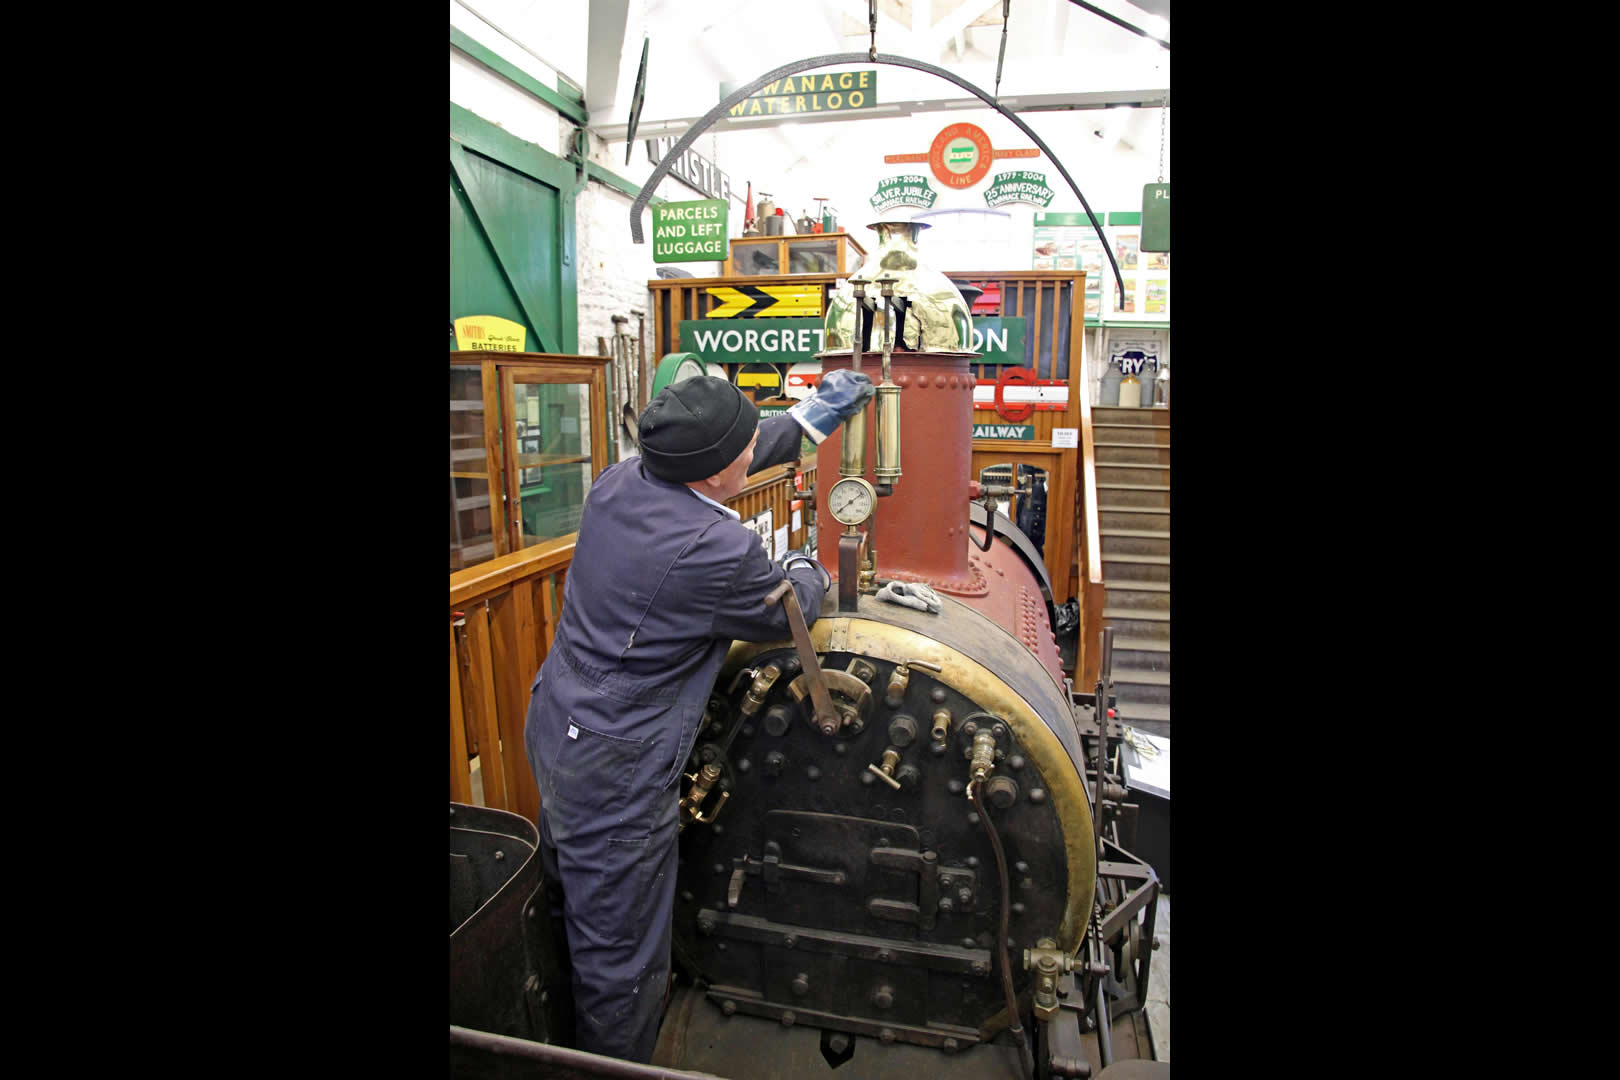 Cleaning Secundus  in Swanage Railway Museum